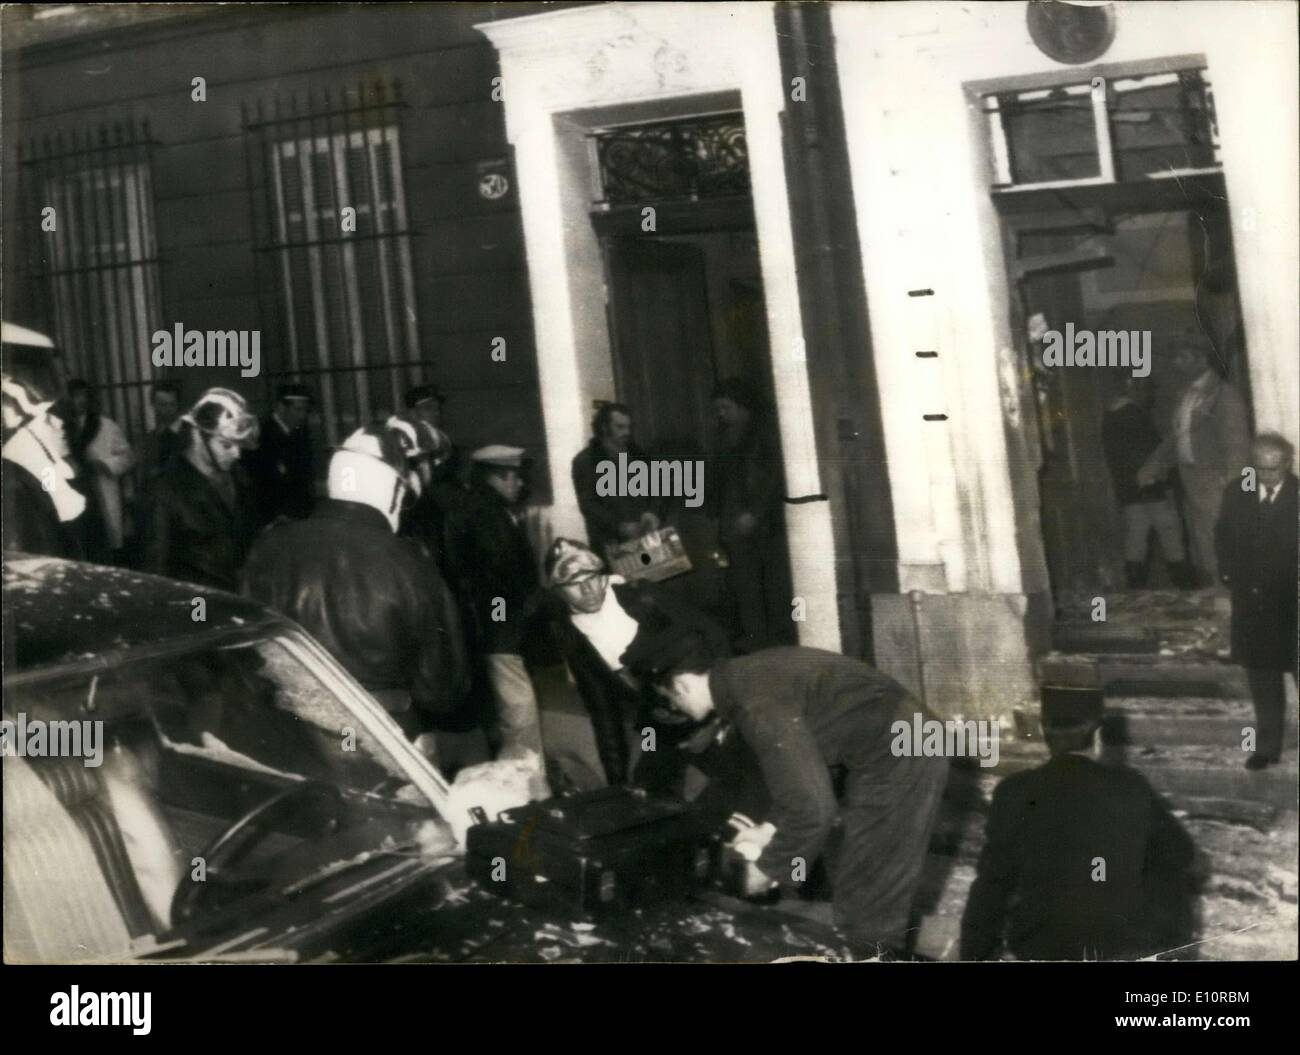 Dec. 14, 1973 - Aftermath of an Explosion Against the Algerian Consulate - Stock Image